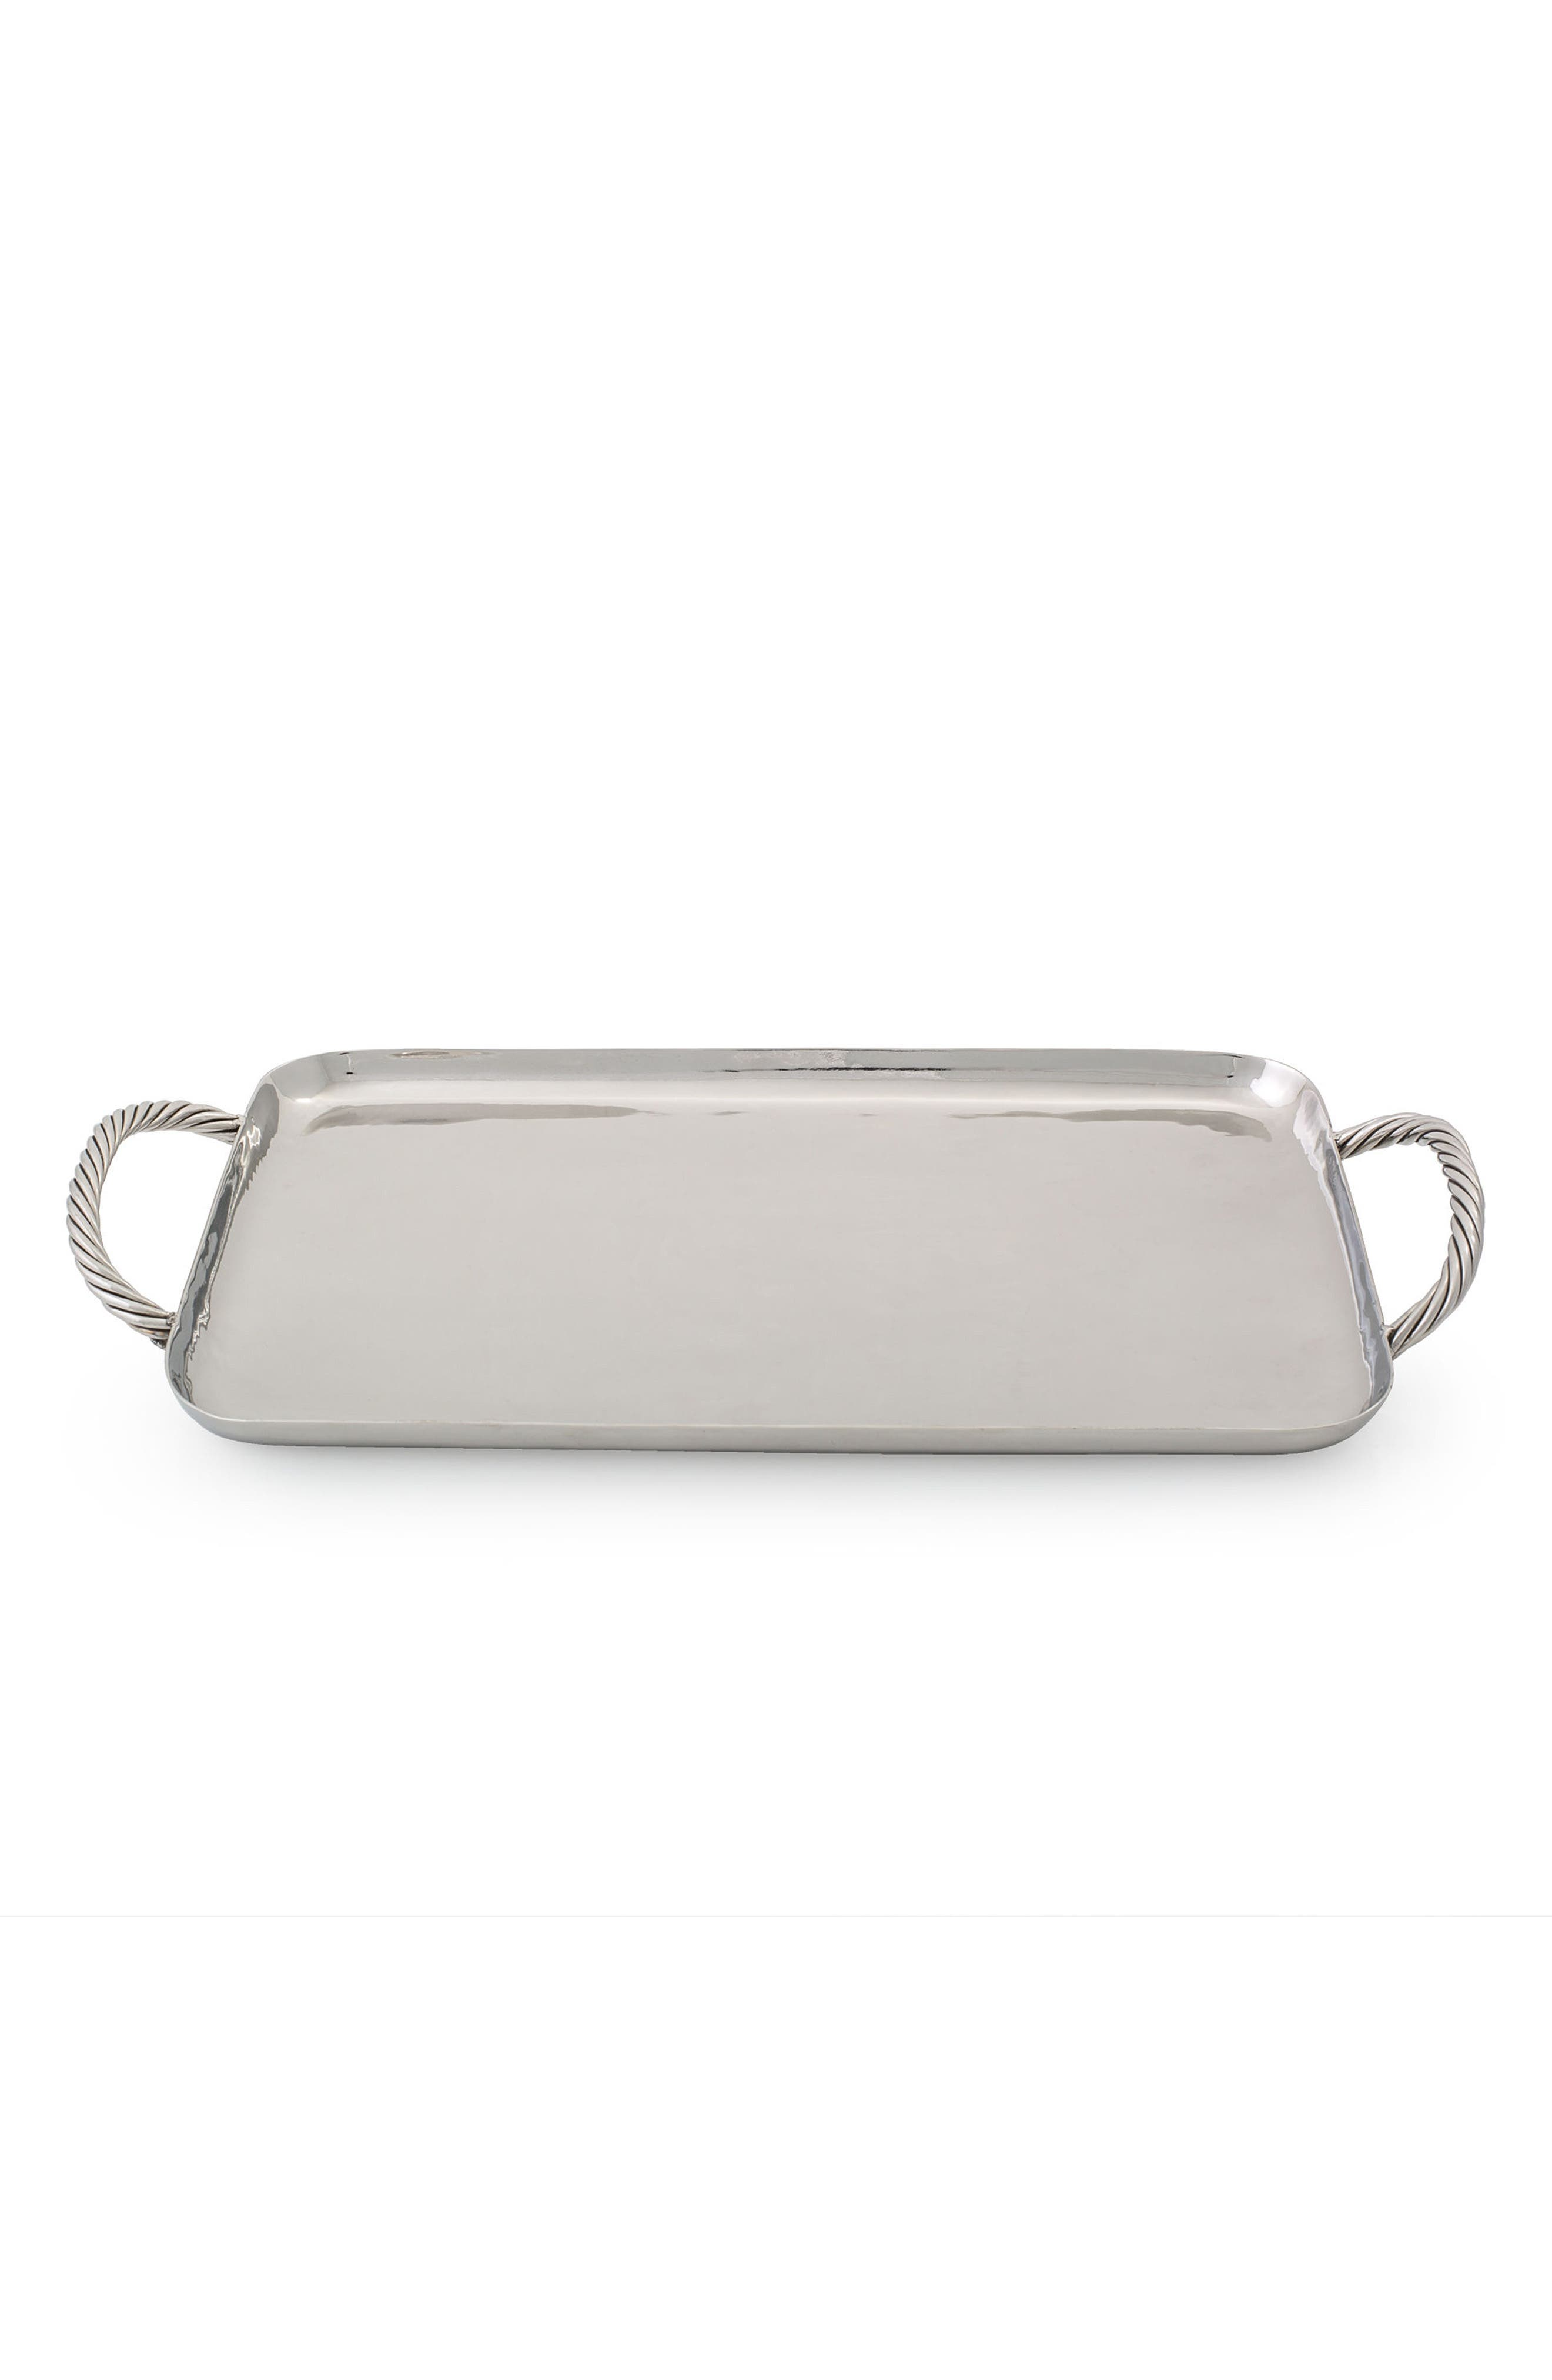 Medium Twist Stainless Steel Tray,                             Main thumbnail 1, color,                             040